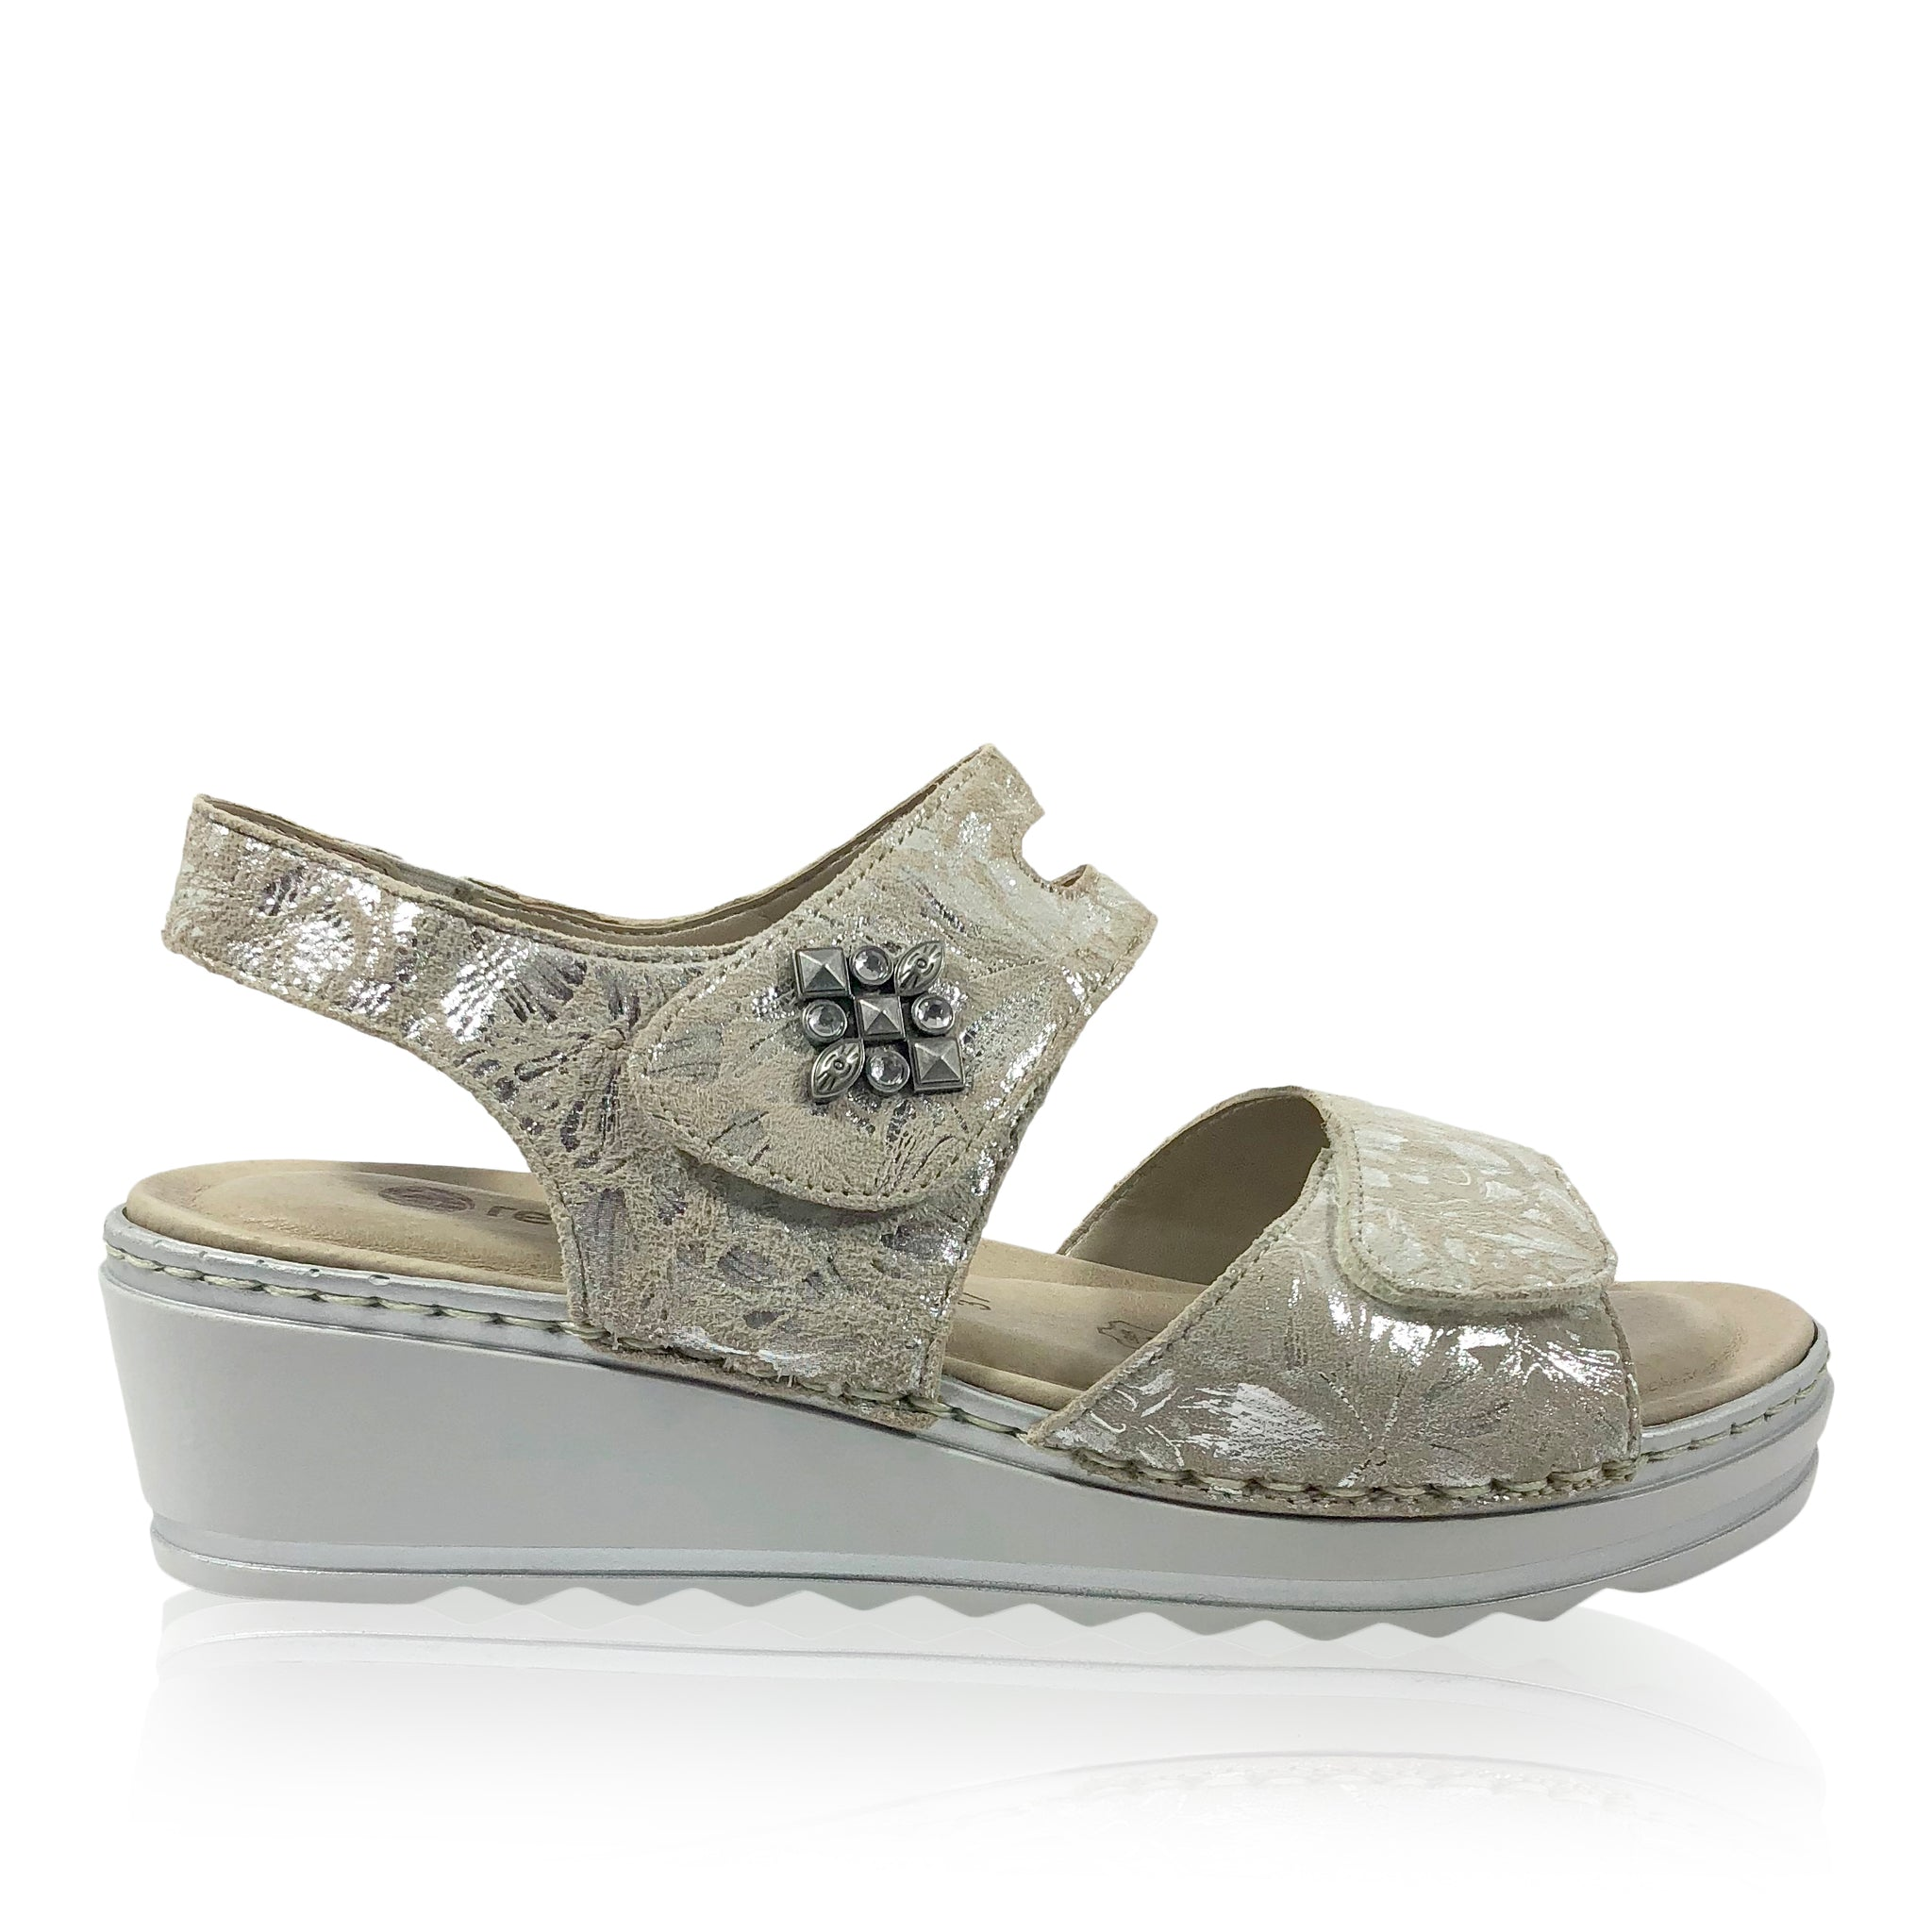 Remonte by Rieker R6055-40 - Grey Combination Sandal